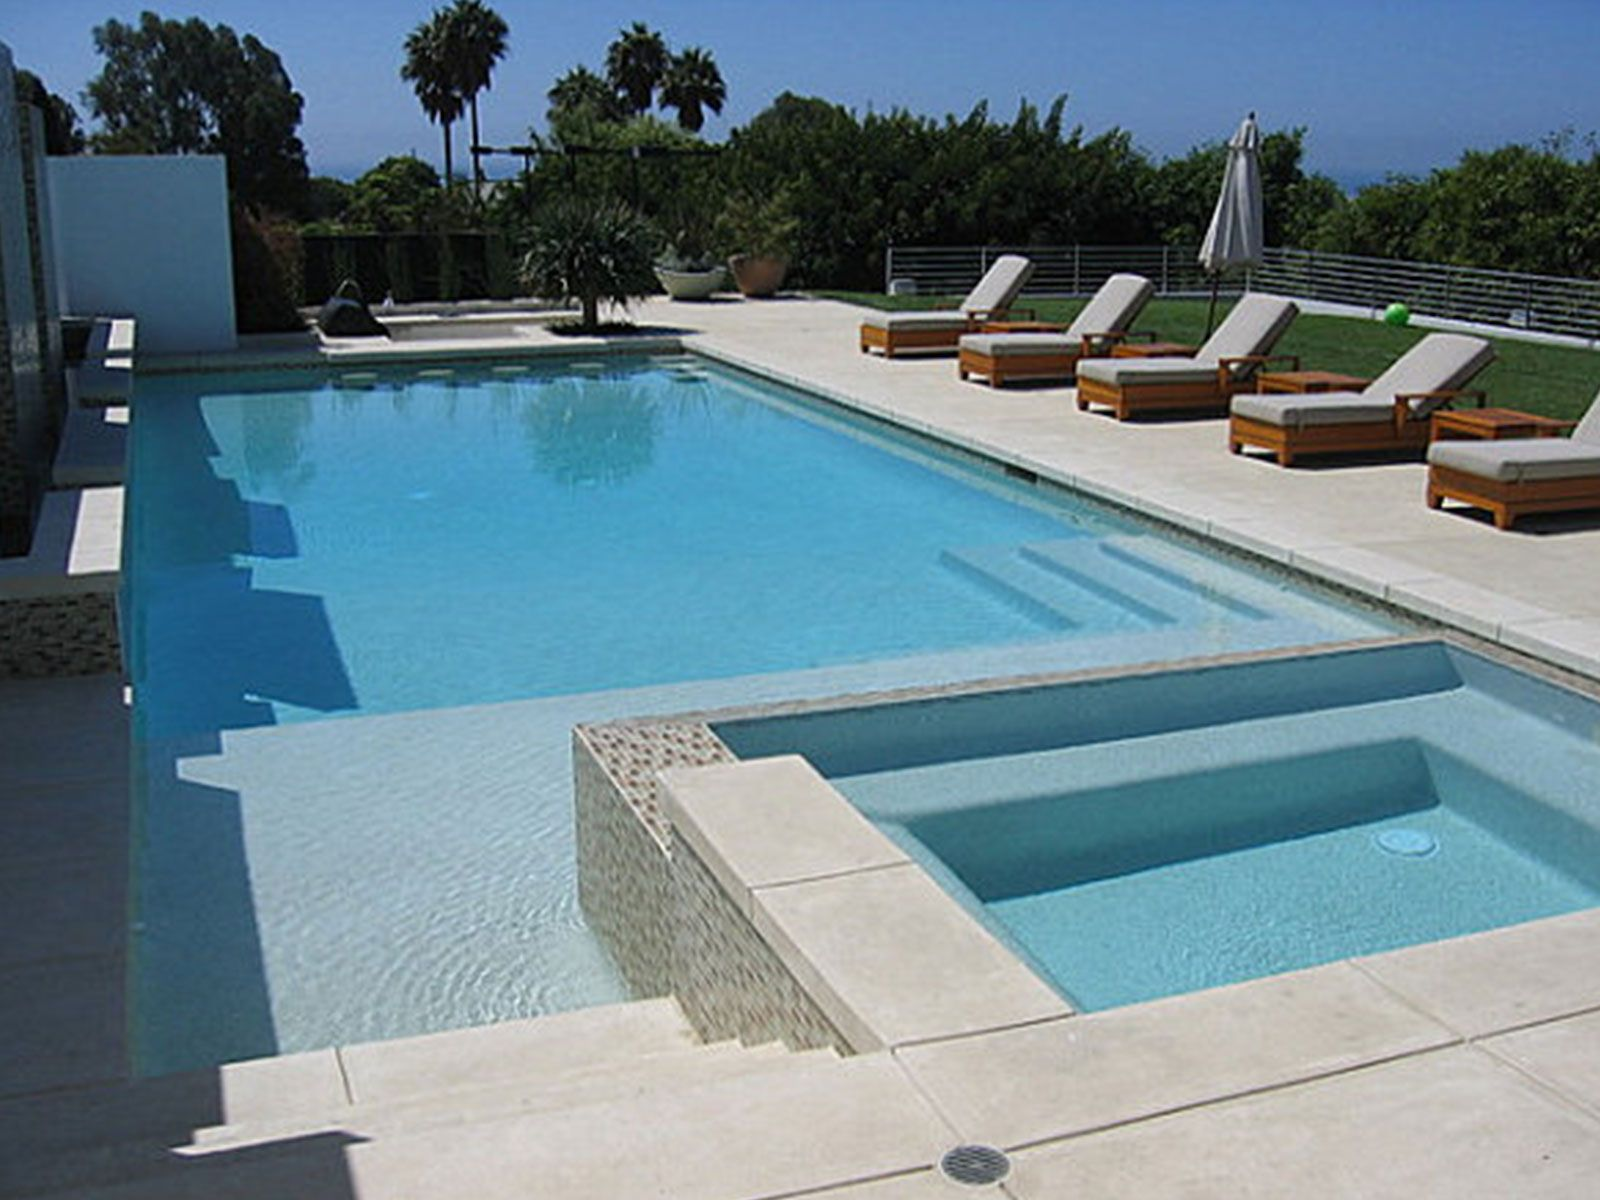 Simple swimming pool design image modern creative swimming for Design my pool